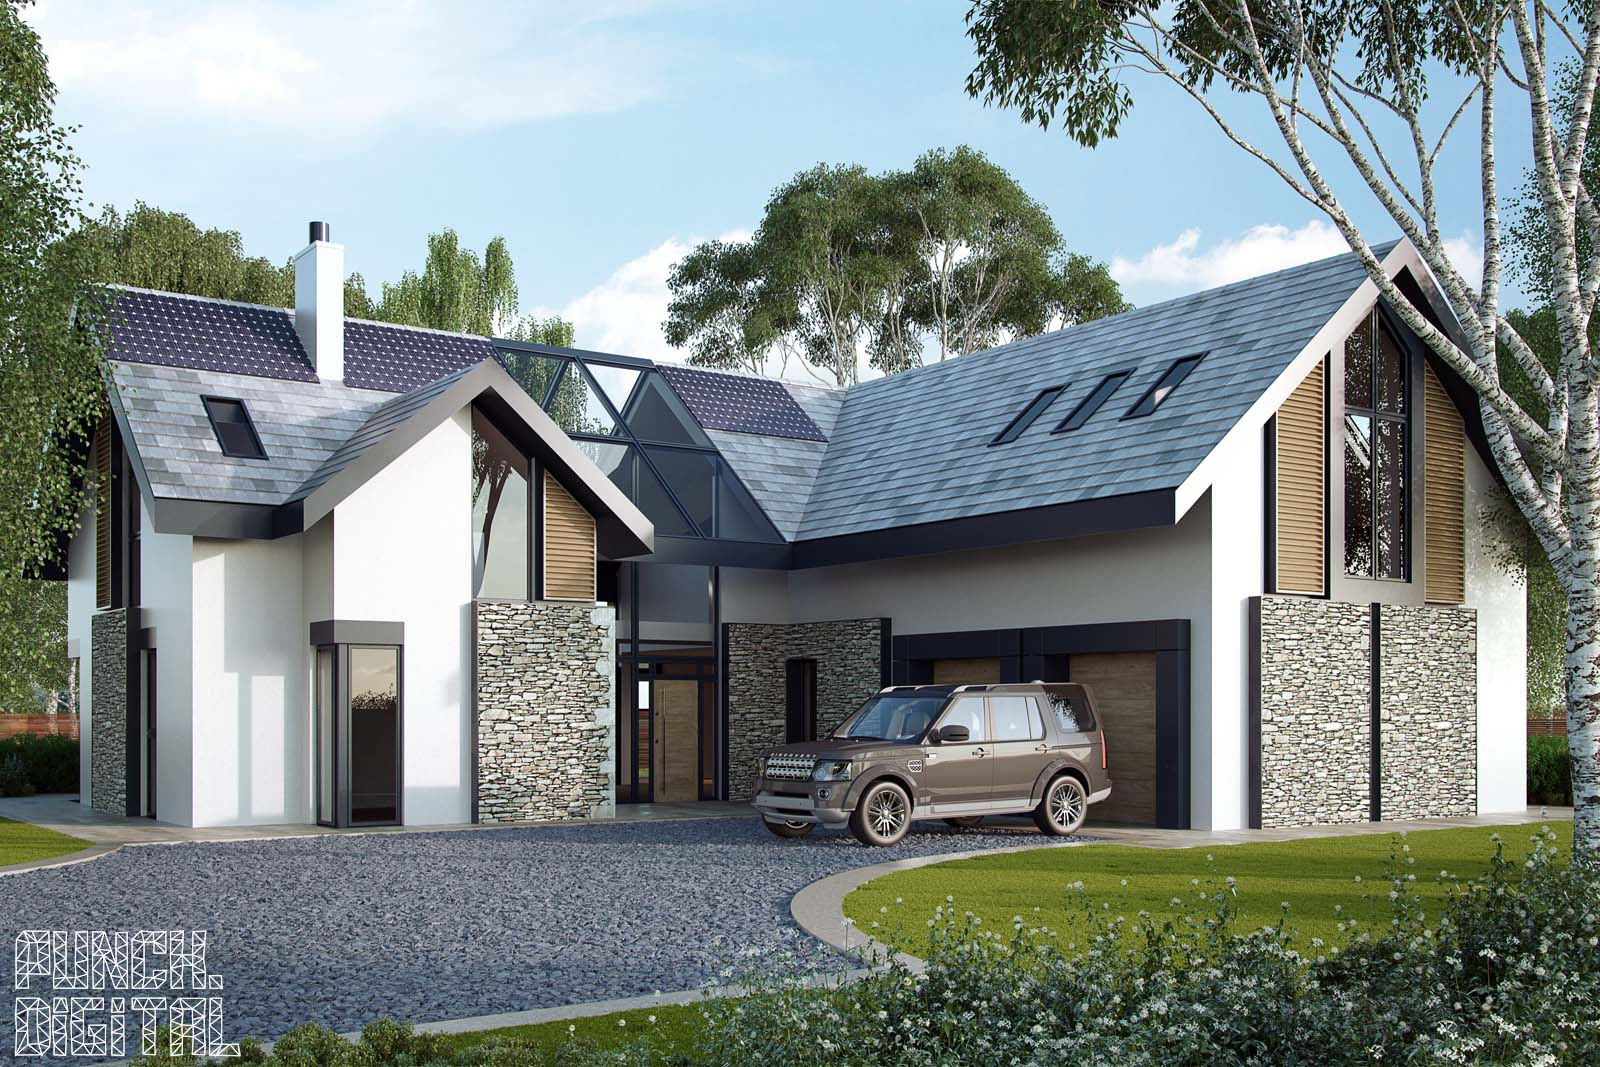 Home Punch Digital Viver Green Architectural Visualisation Animation CGI